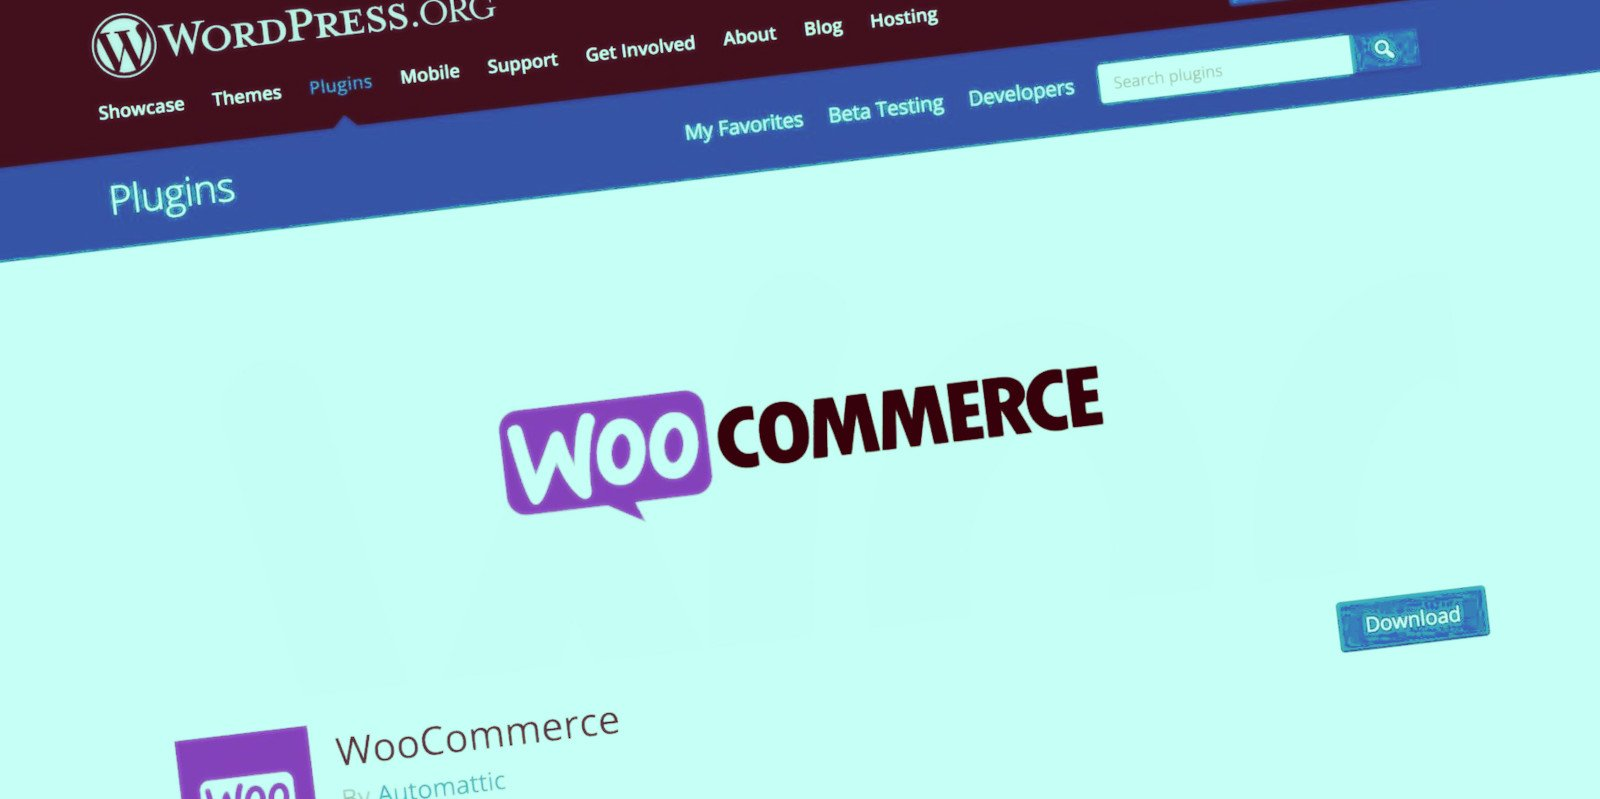 WooCommerce fixes vulnerability exposing 5 million sites to data theft